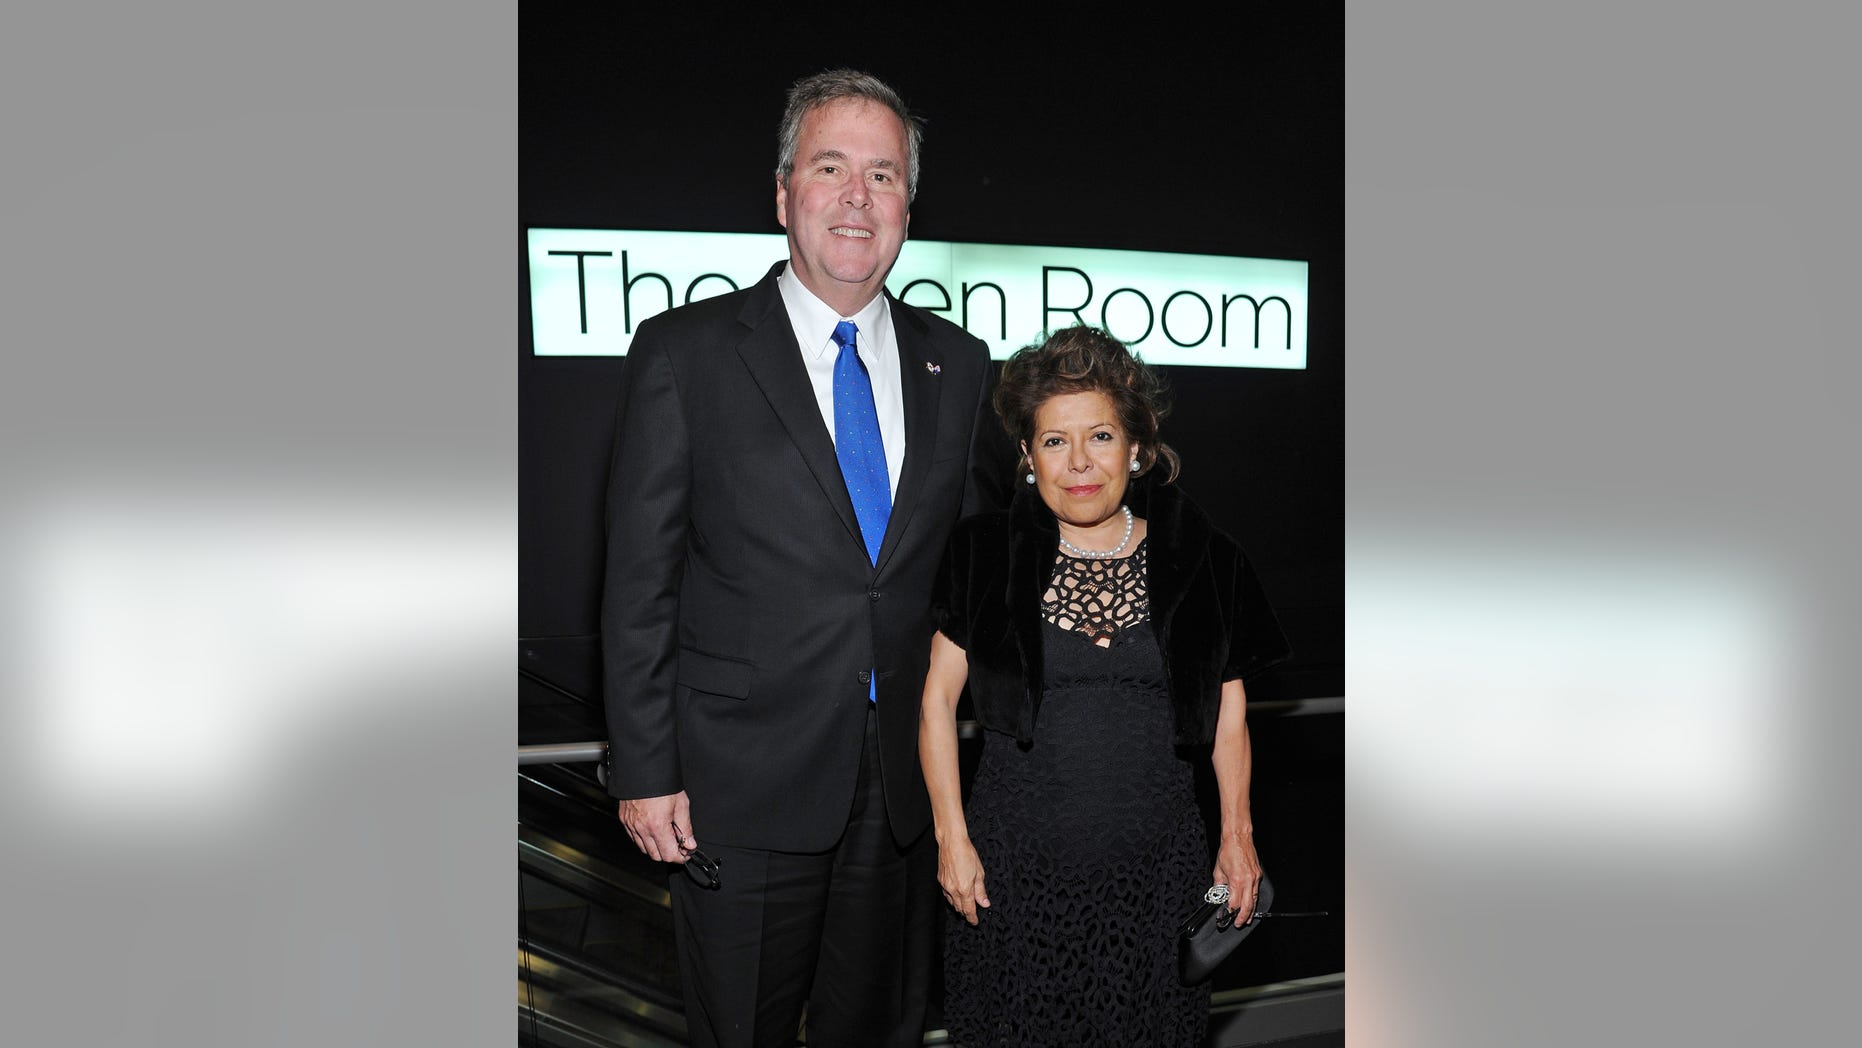 Jeb Bush and wife Columba attend a gala at Lincoln Center on March 7, 2012 in New York City.